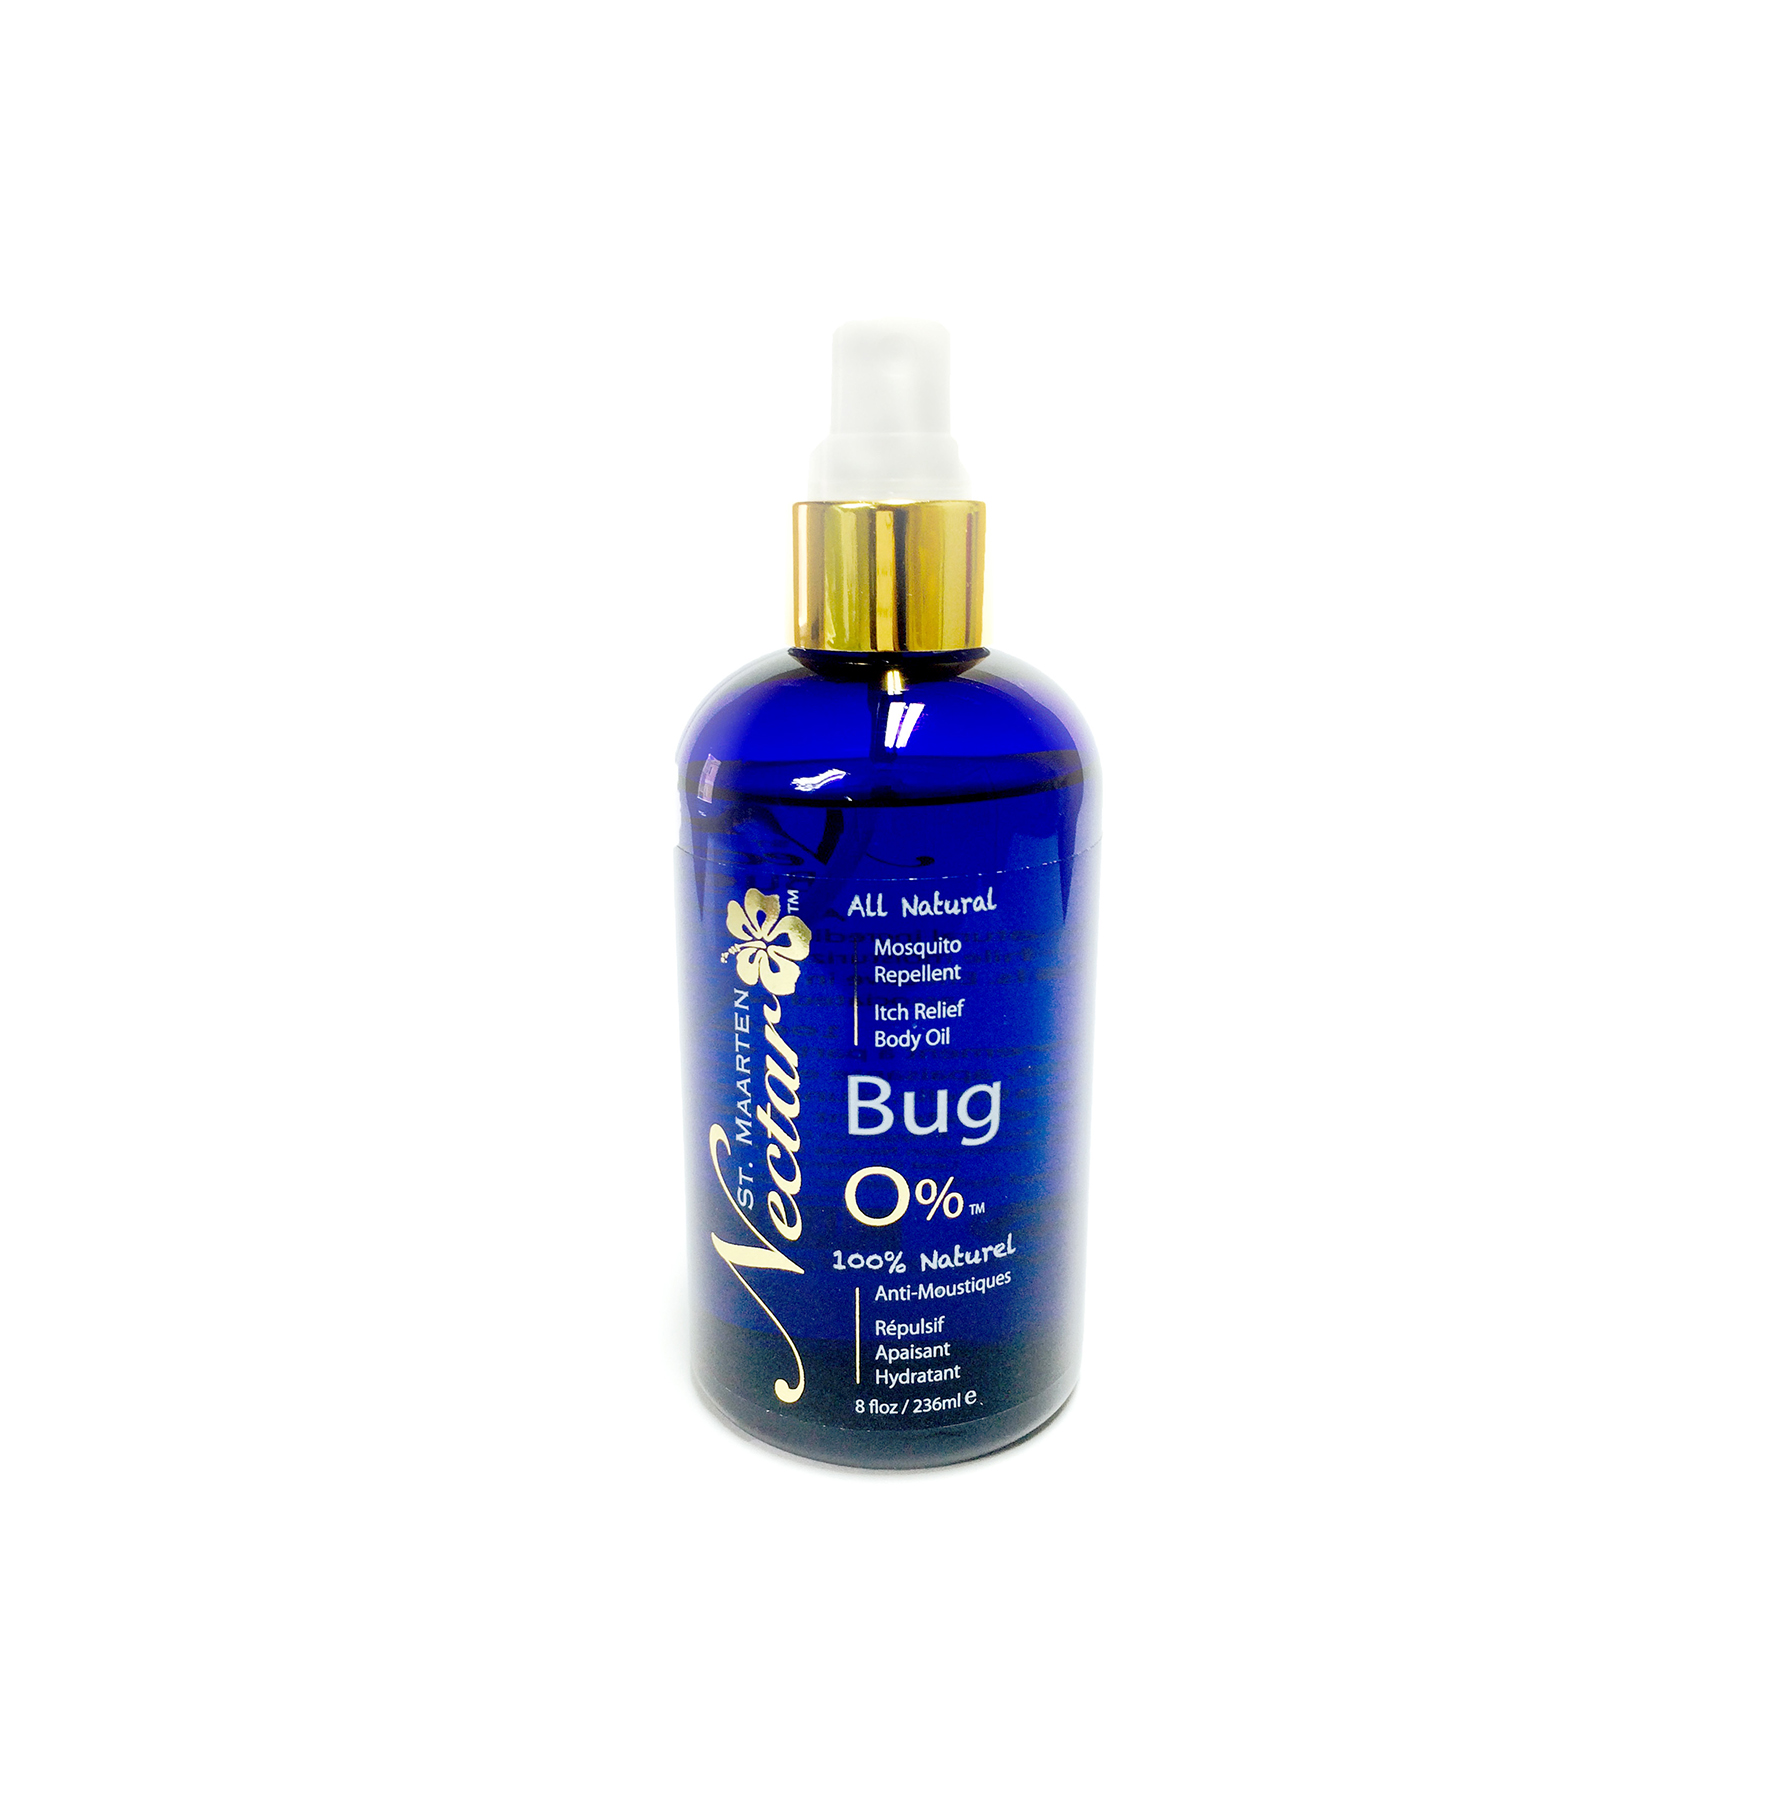 Bug 0% by St. Maarten Nectar